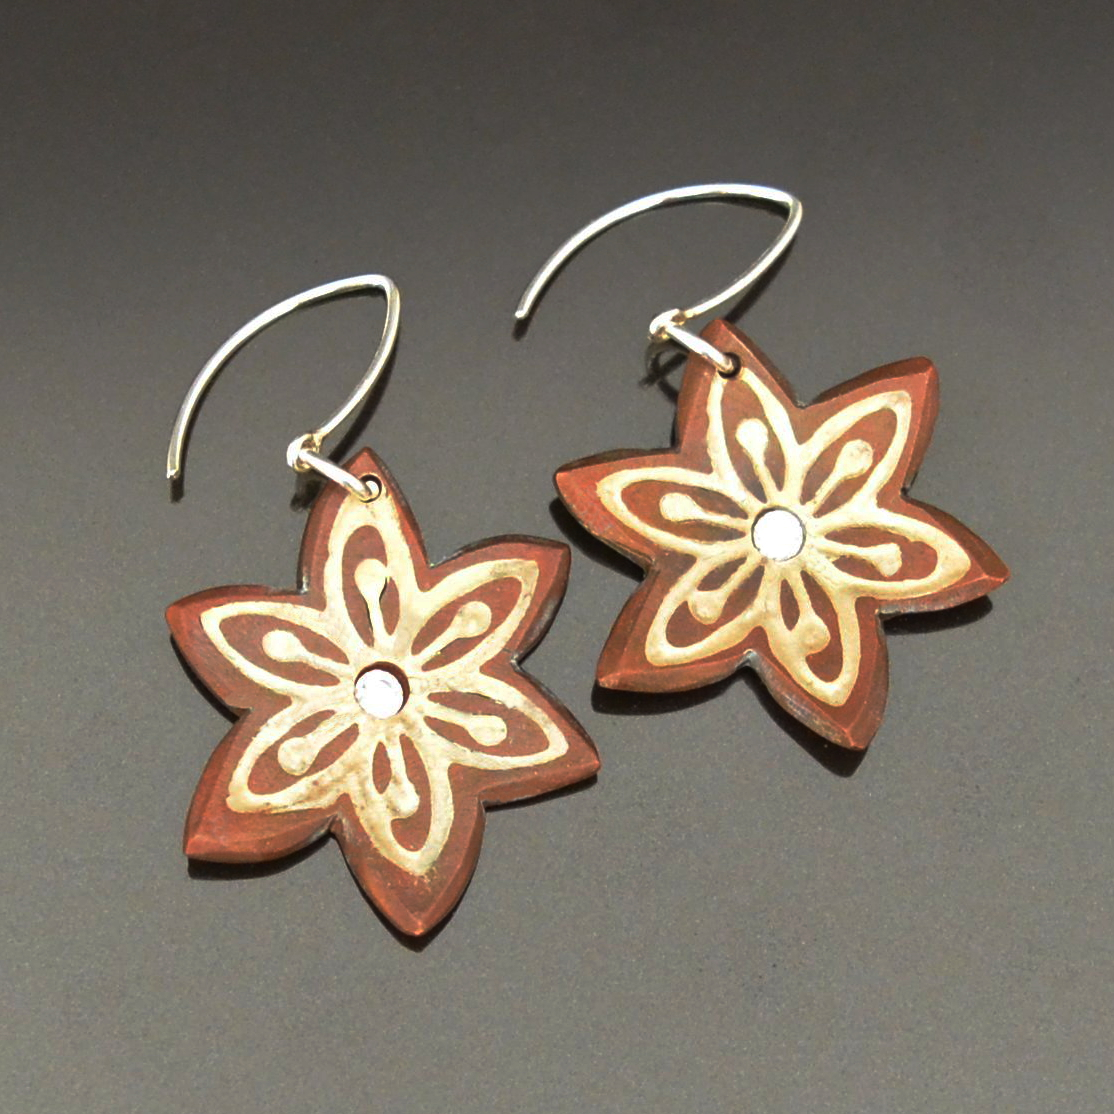 Molume Gane Earrings by Tracey Spurgin of Craftworx Jewellery Workshops